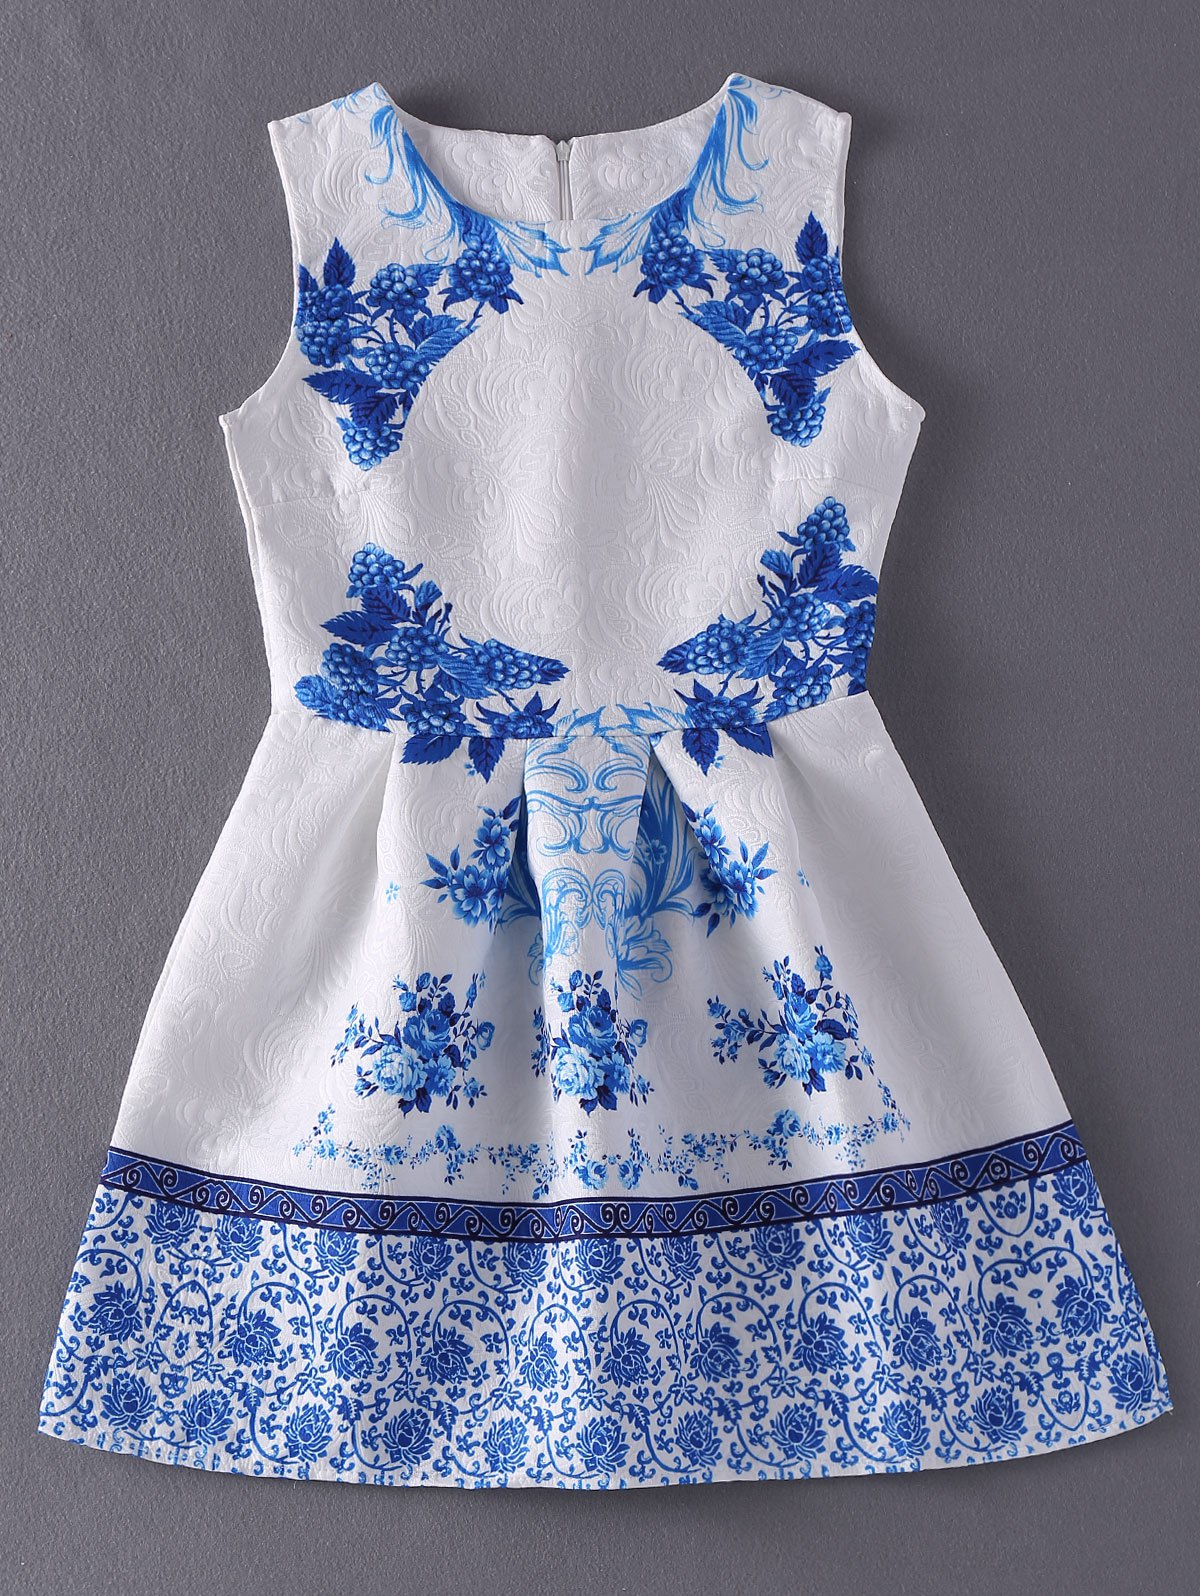 Vintage Style Women's Jewel Neck Sleeveless Floral Print Jacquard Dress - BLUE/WHITE S